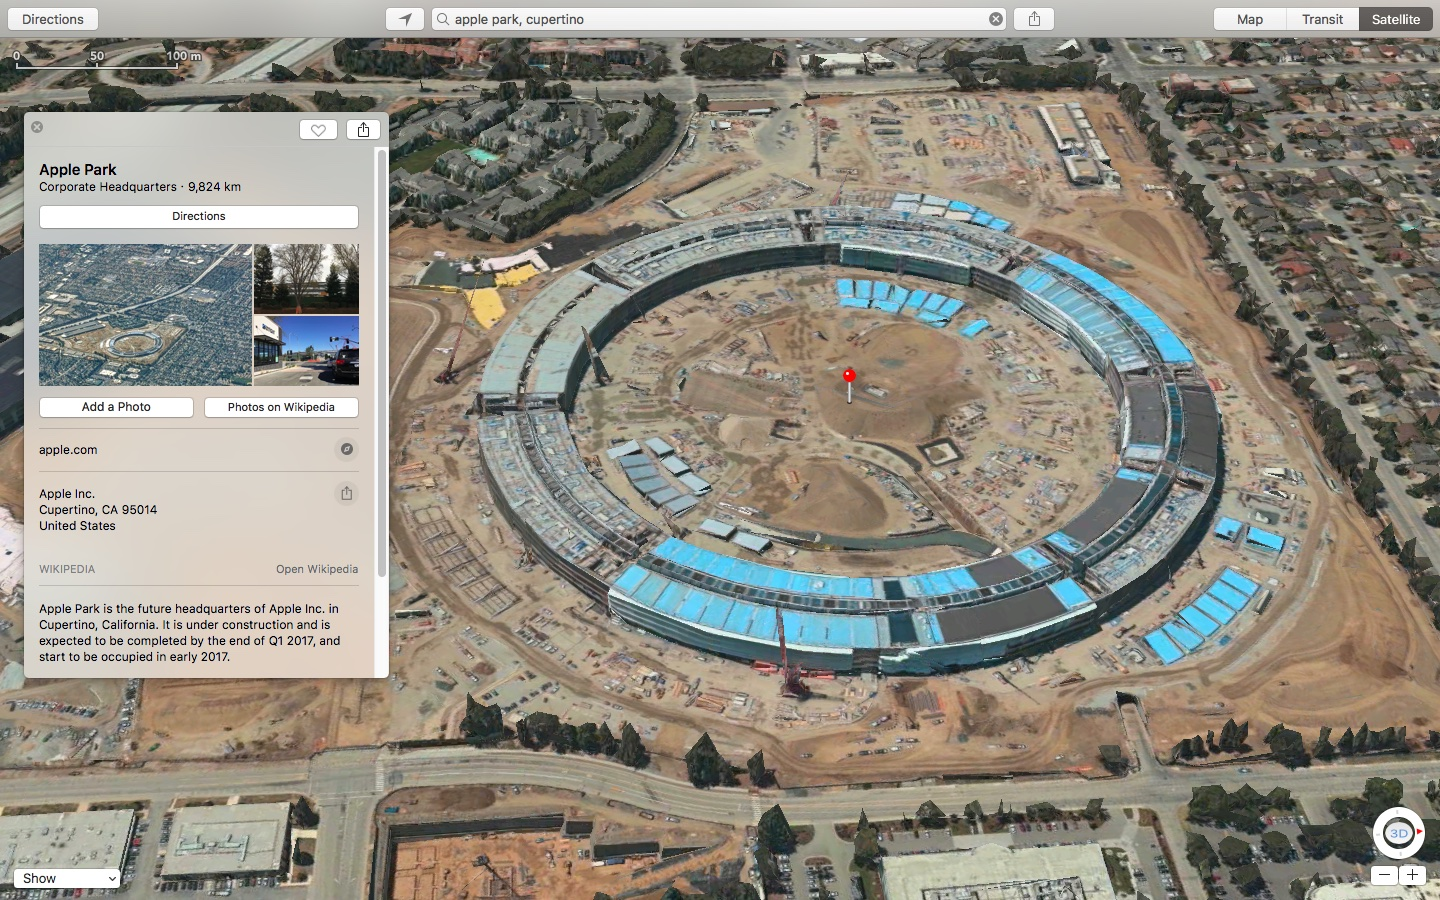 3D Satellite Imagery And Related Details For Apple Park Go Live On Maps